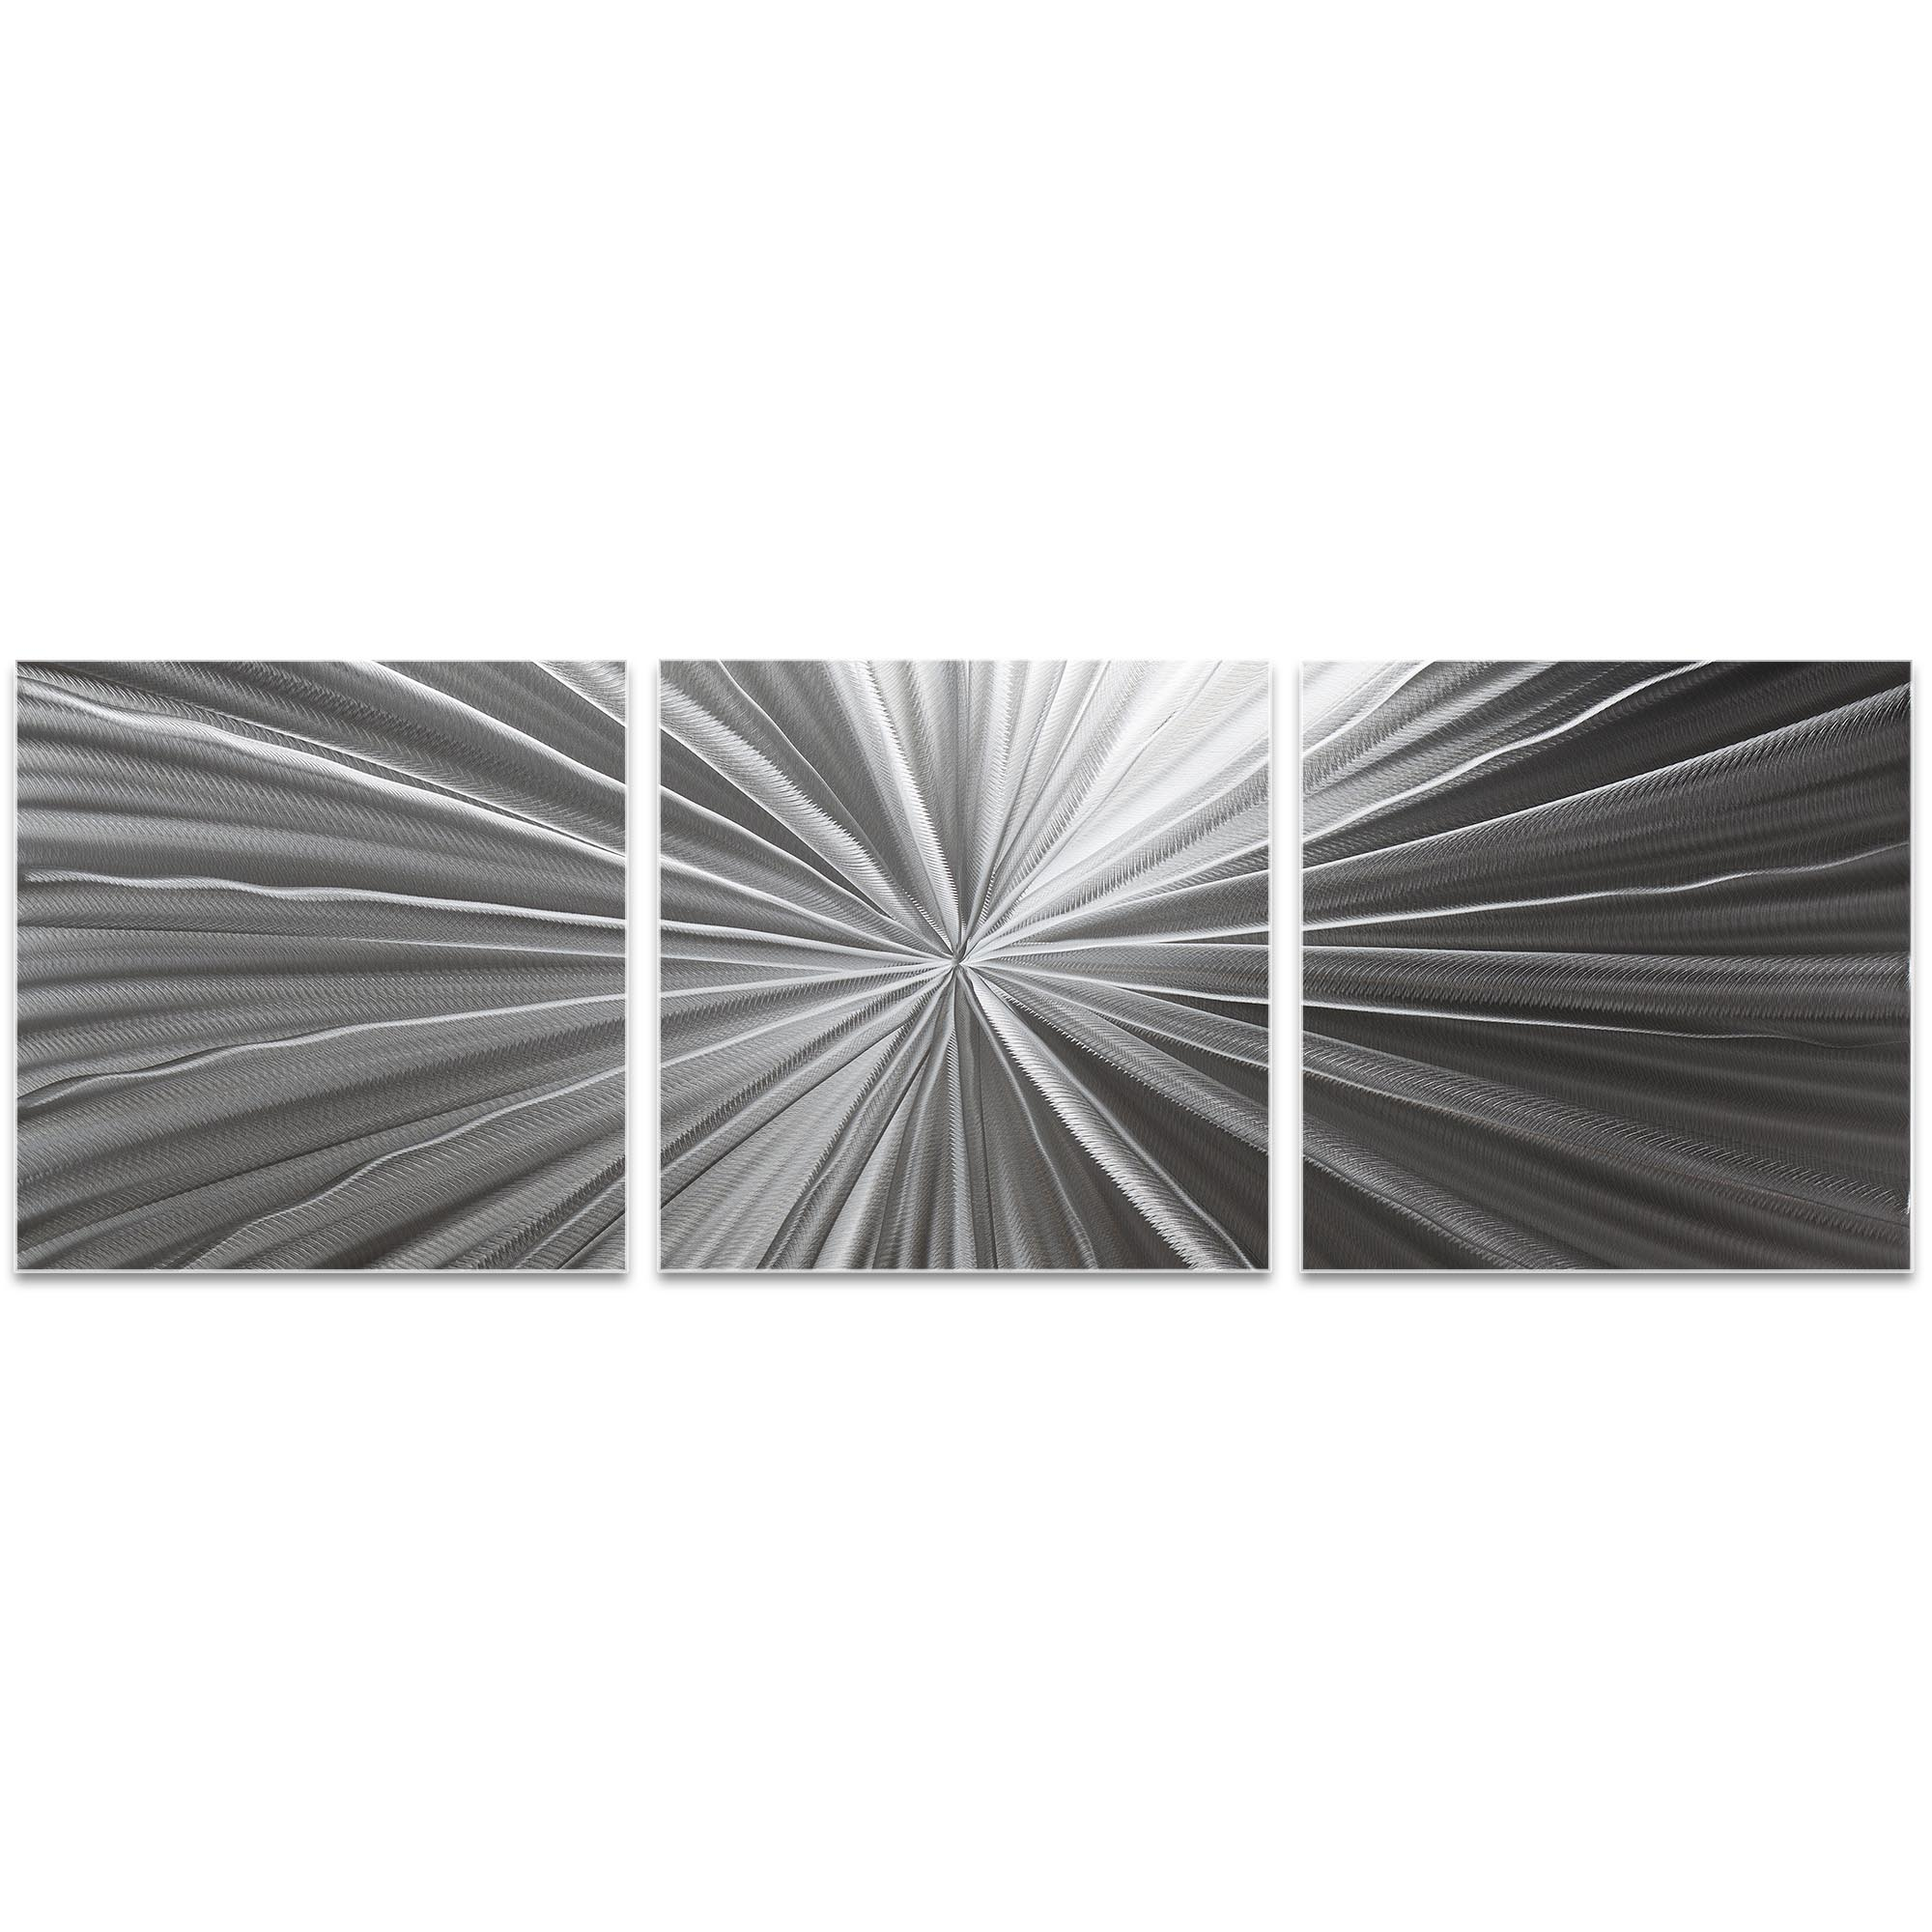 Tantalum Triptych Large 70x22in. Metal or Acrylic Contemporary Decor - Image 2